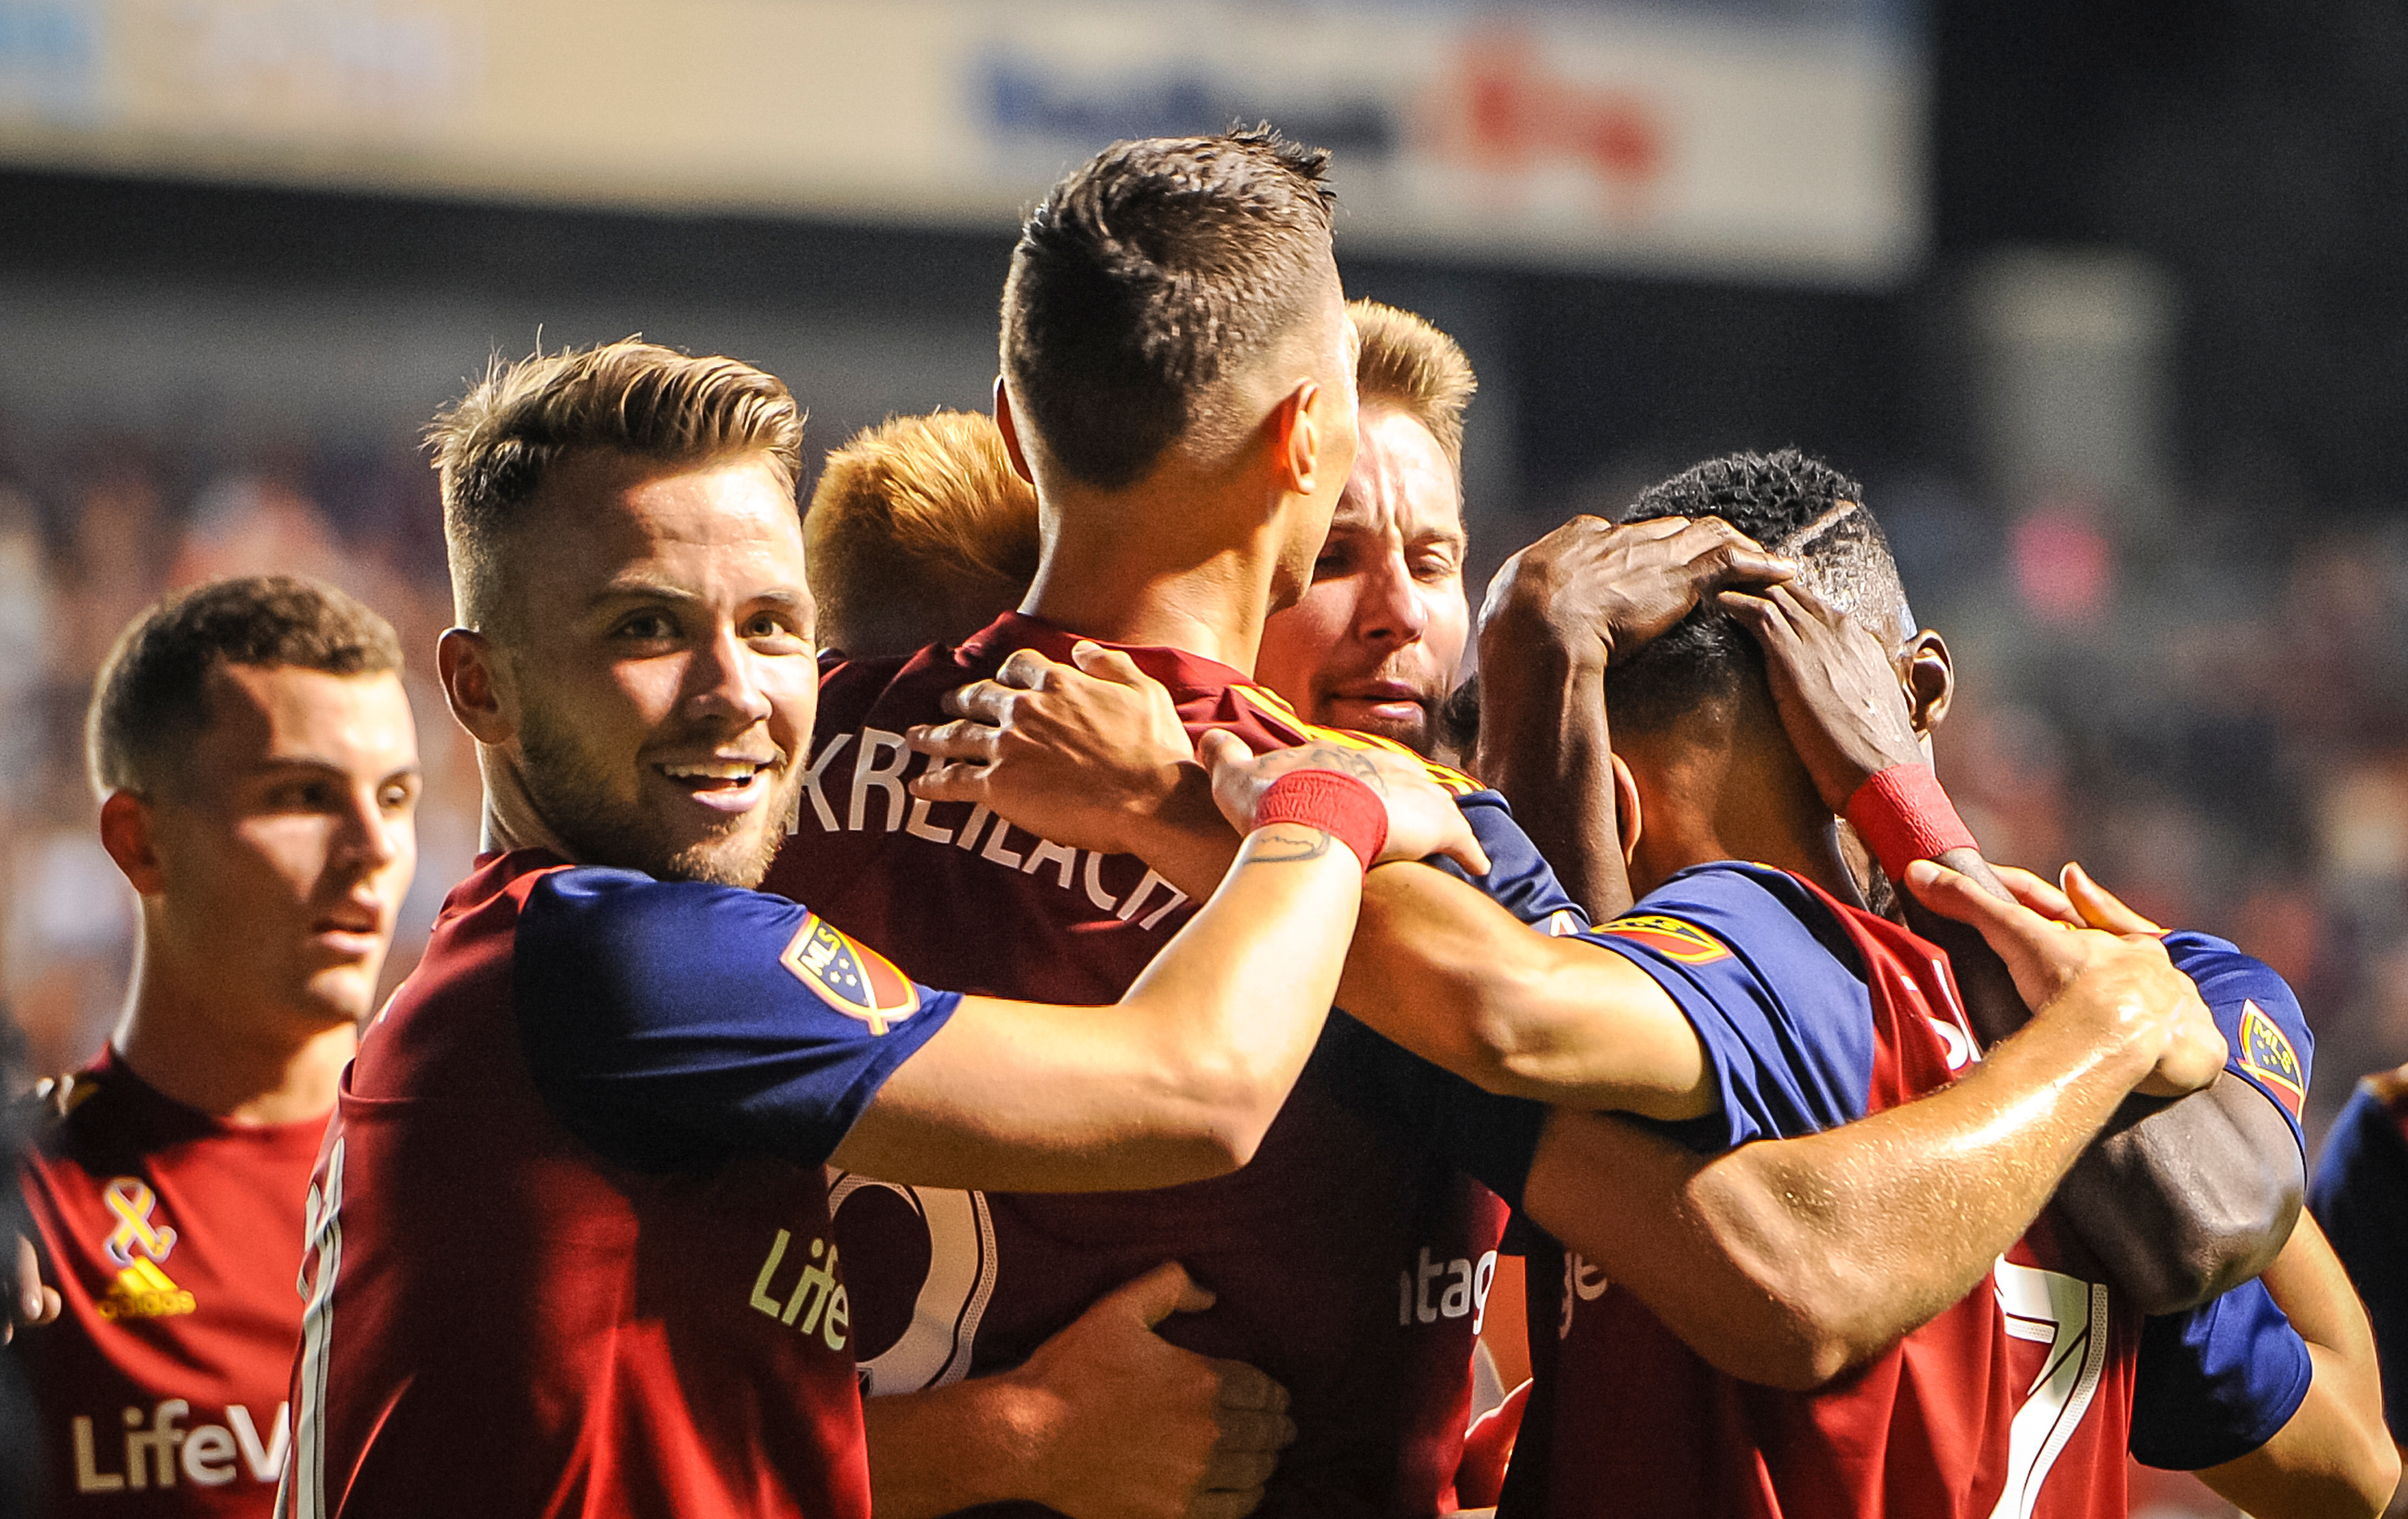 The team rallies around Real Salt Lake forward Jefferson Savarino (7) after he scores one of the 6 goals scored as Real Salt Lake hosts the LA Galaxy at Rio Tinto Stadium in Sandy on Saturday, Sept. 1, 2018.